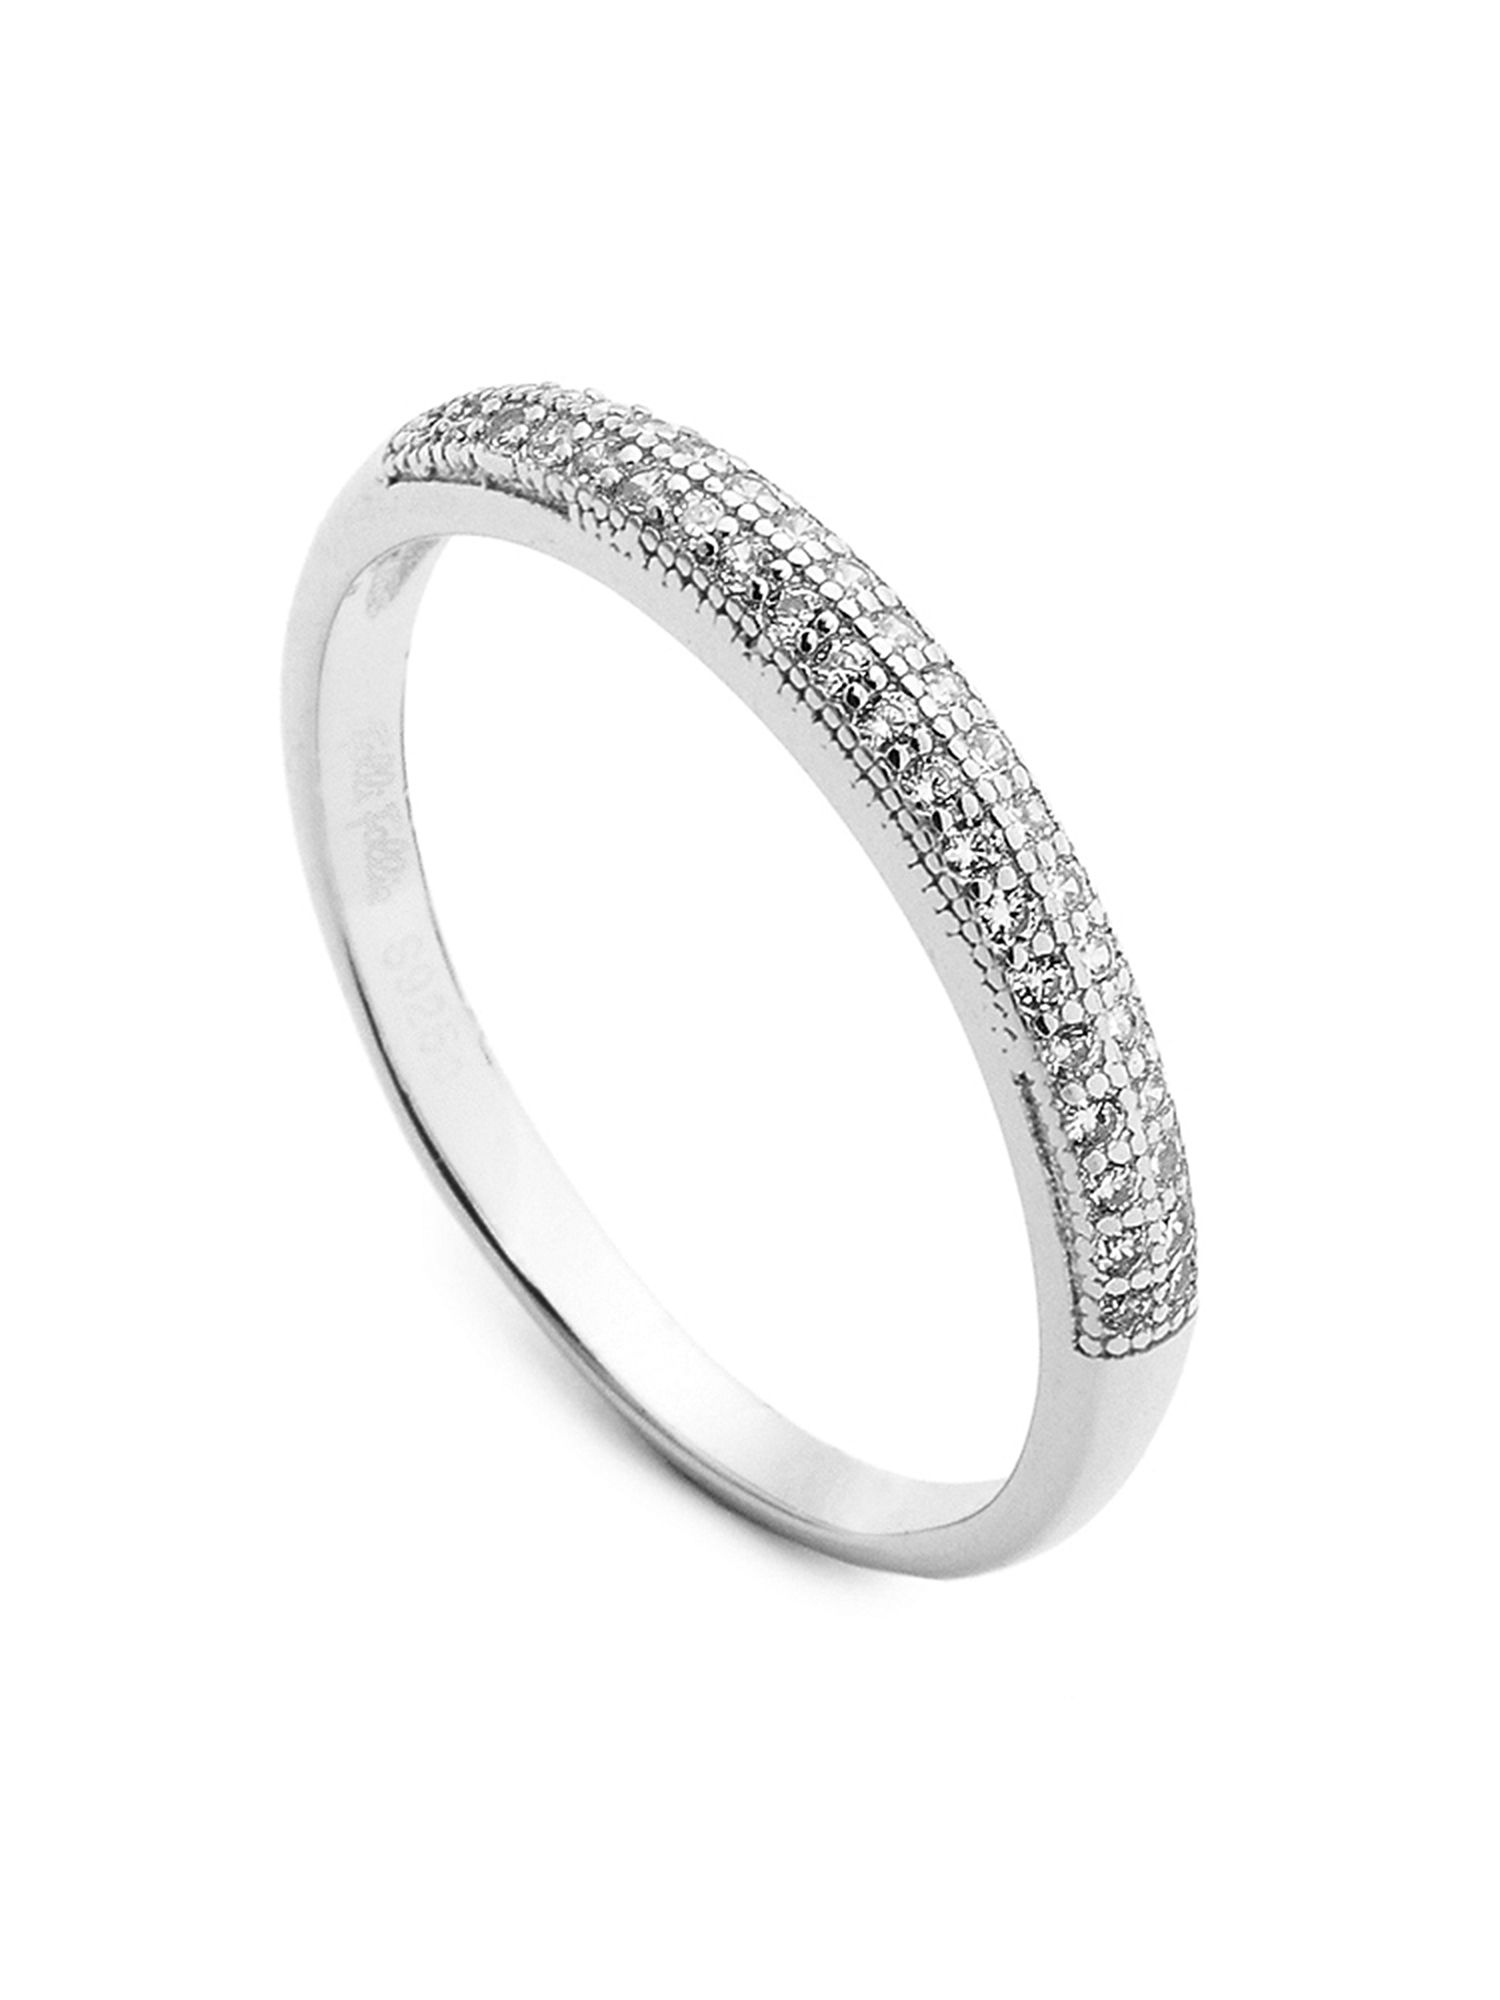 folli follie fashionably silver sparkle ring